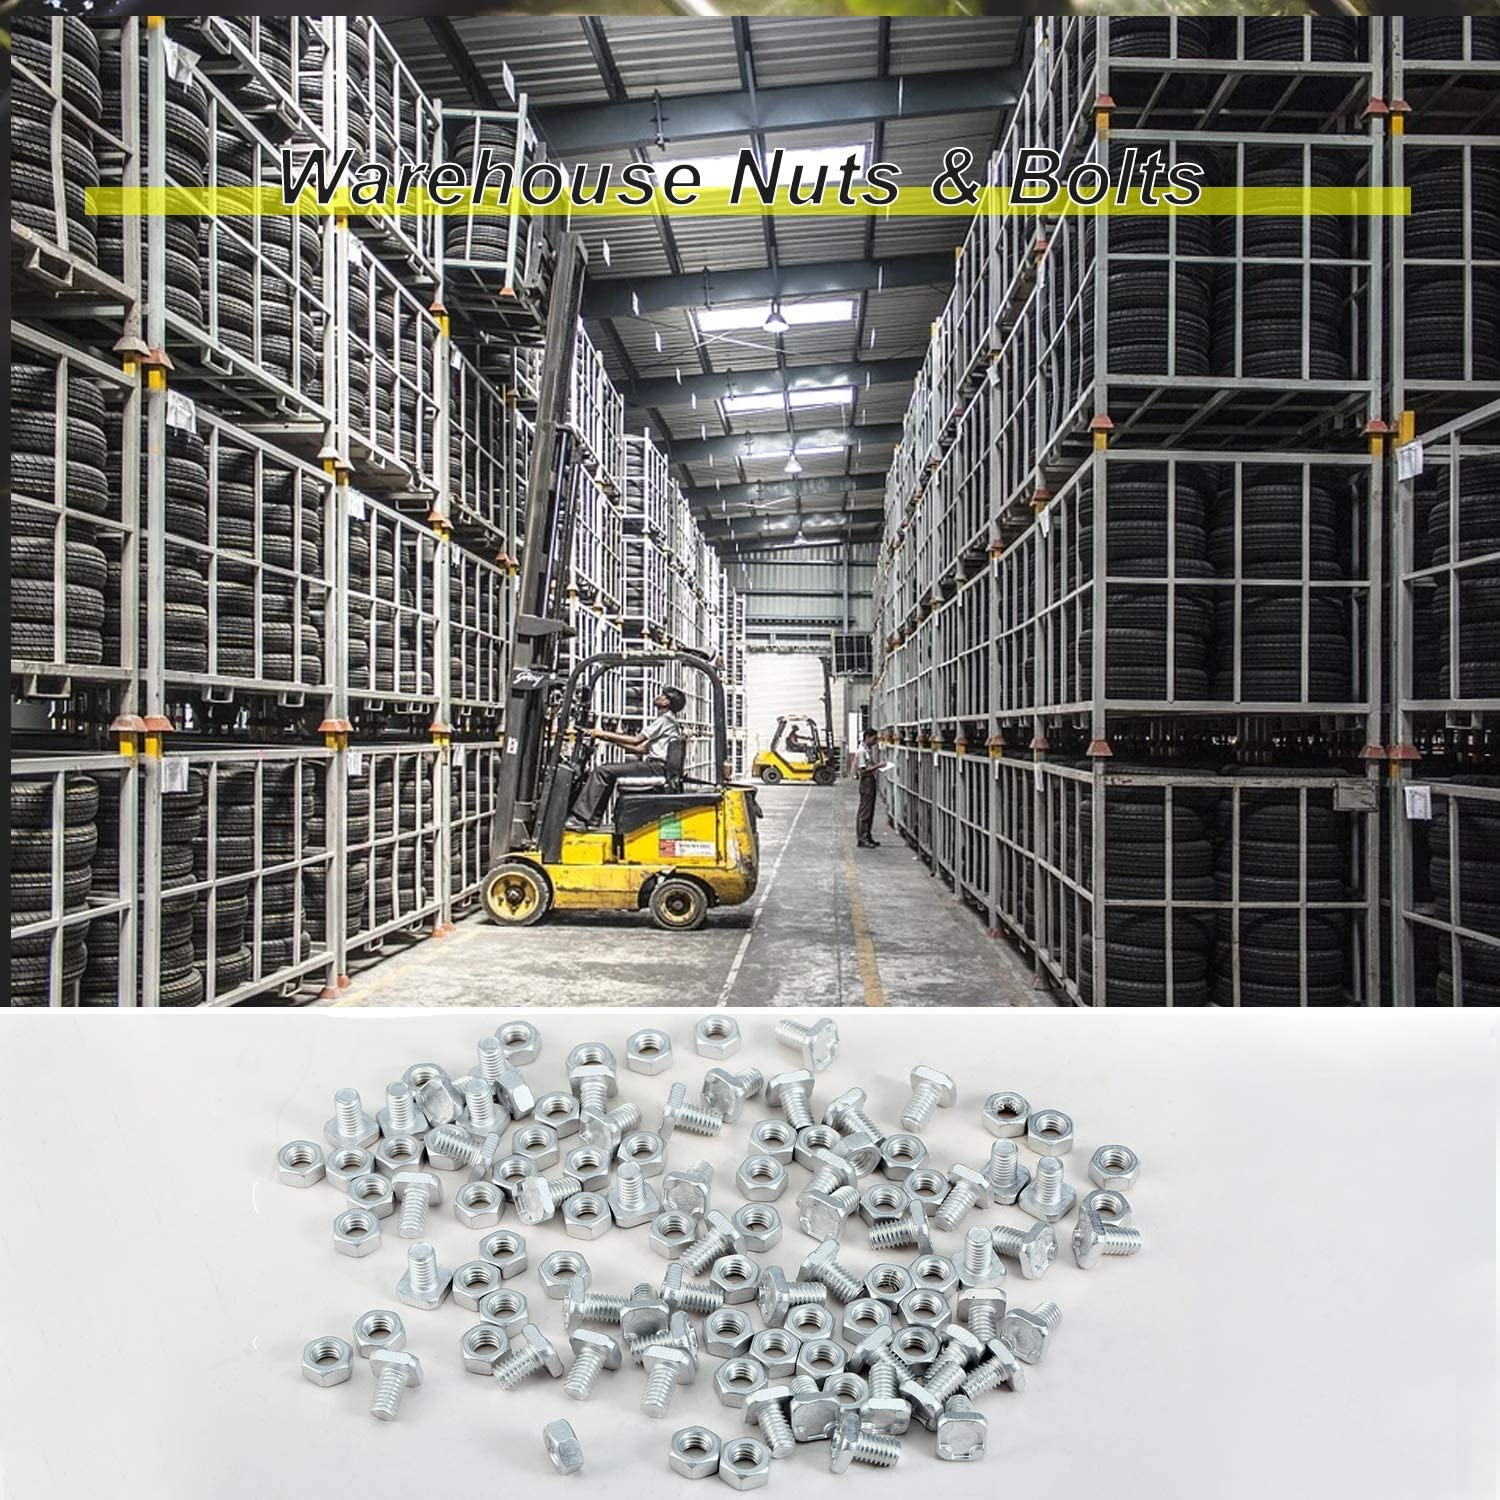 Goliraya 50Pairs Greenhouse M6 Nuts /& Bolts Standard Size Replacements Aluminum Warehouse Parts Nuts /& Bolts Accessories